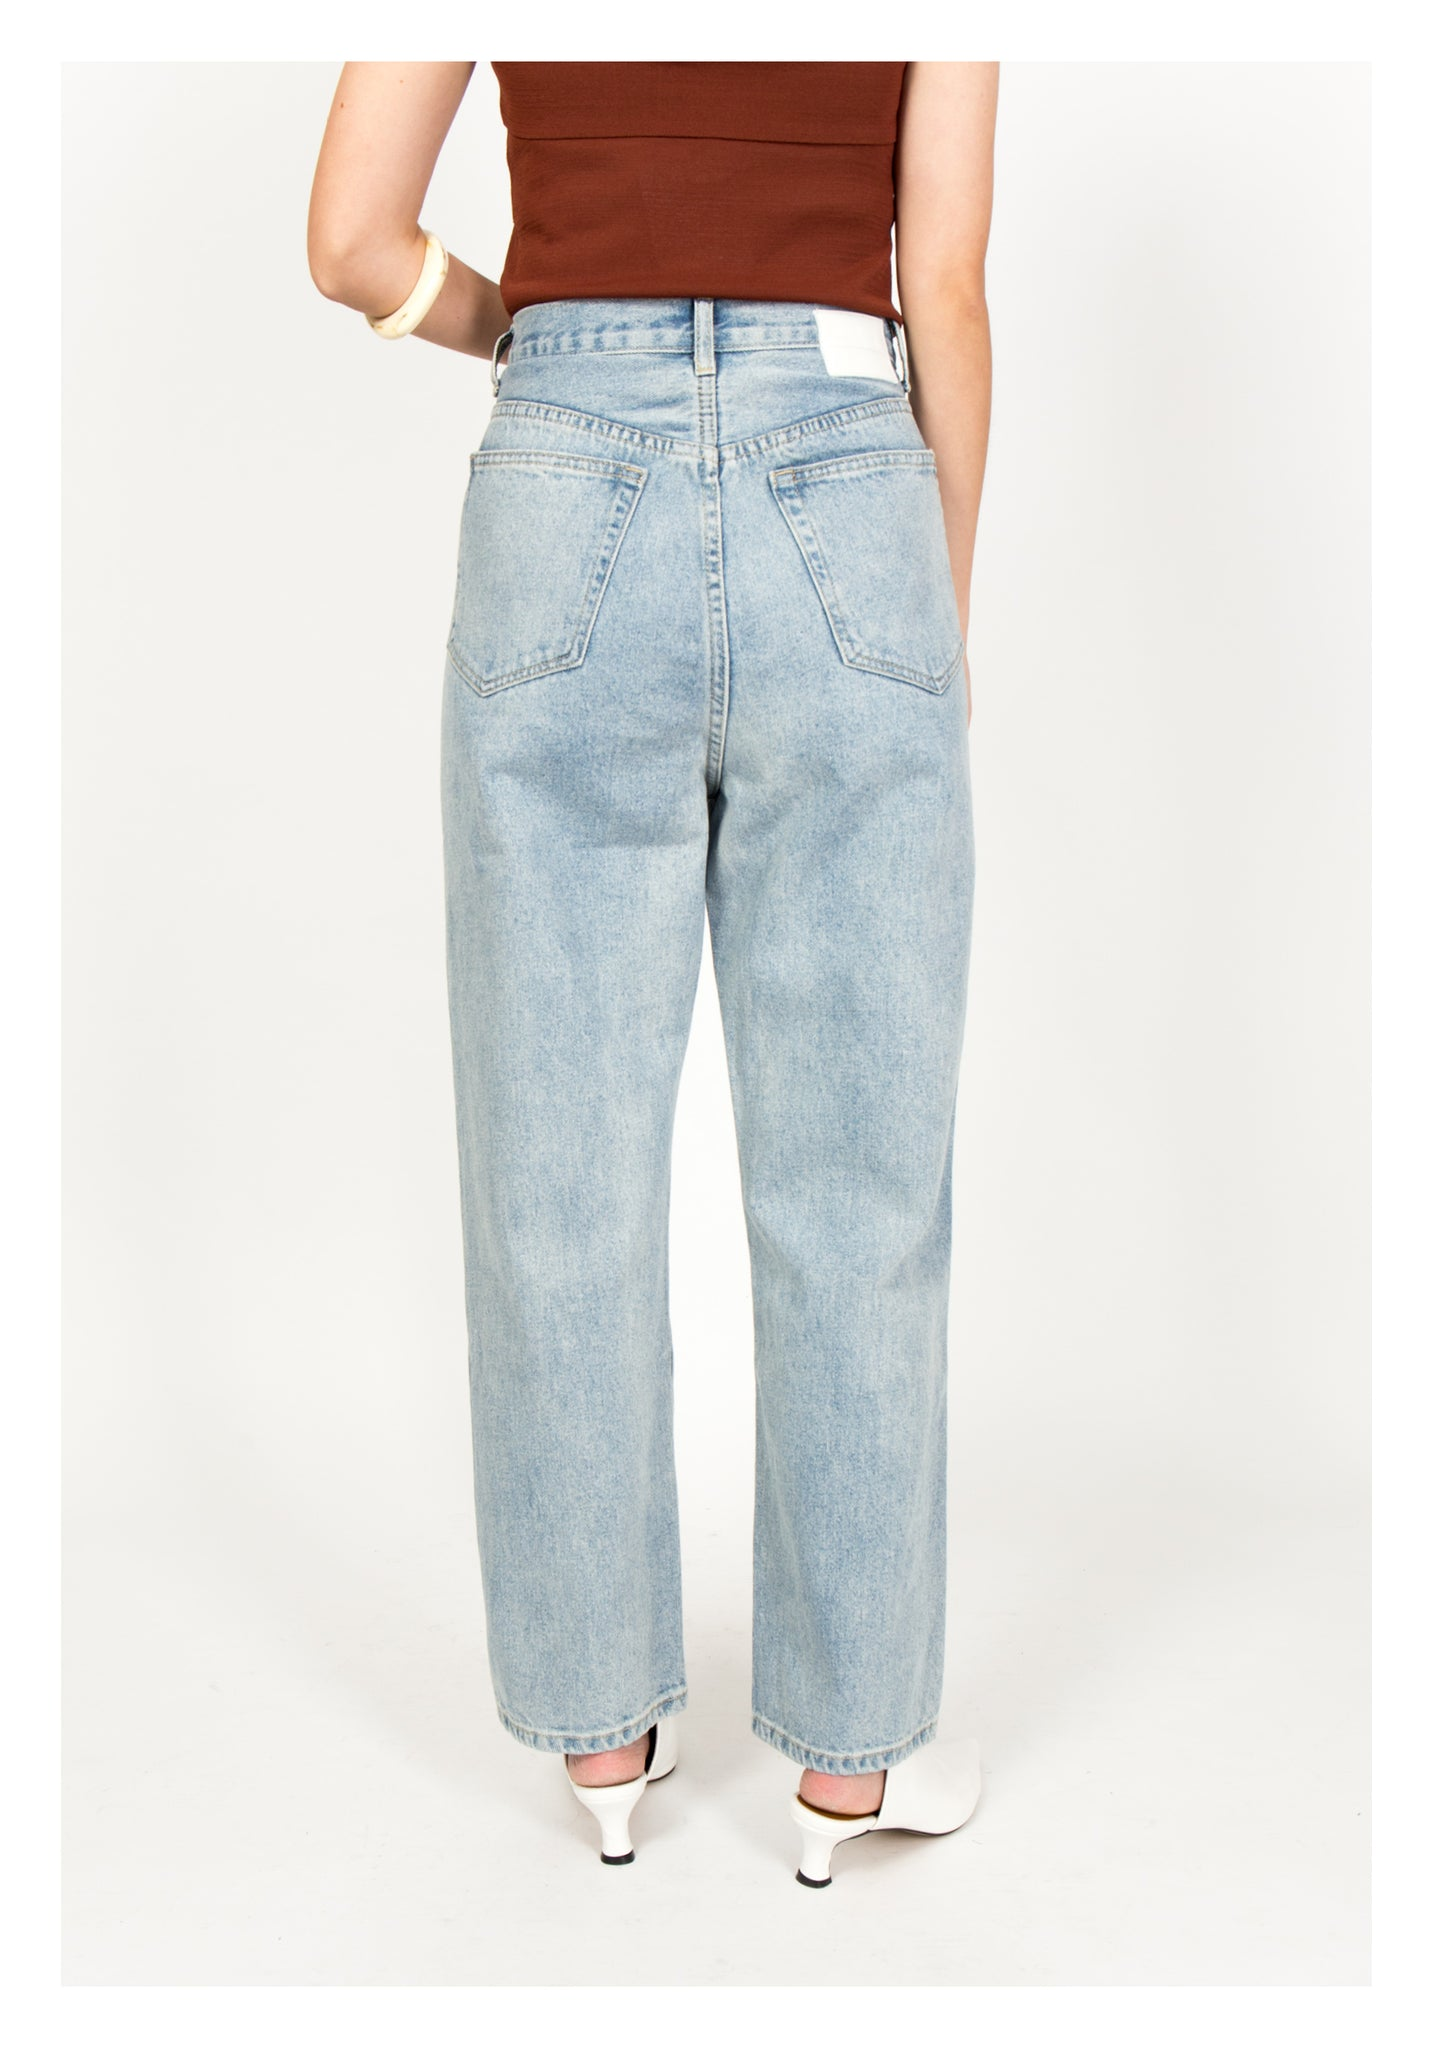 Two Buttons Stepped Jeans